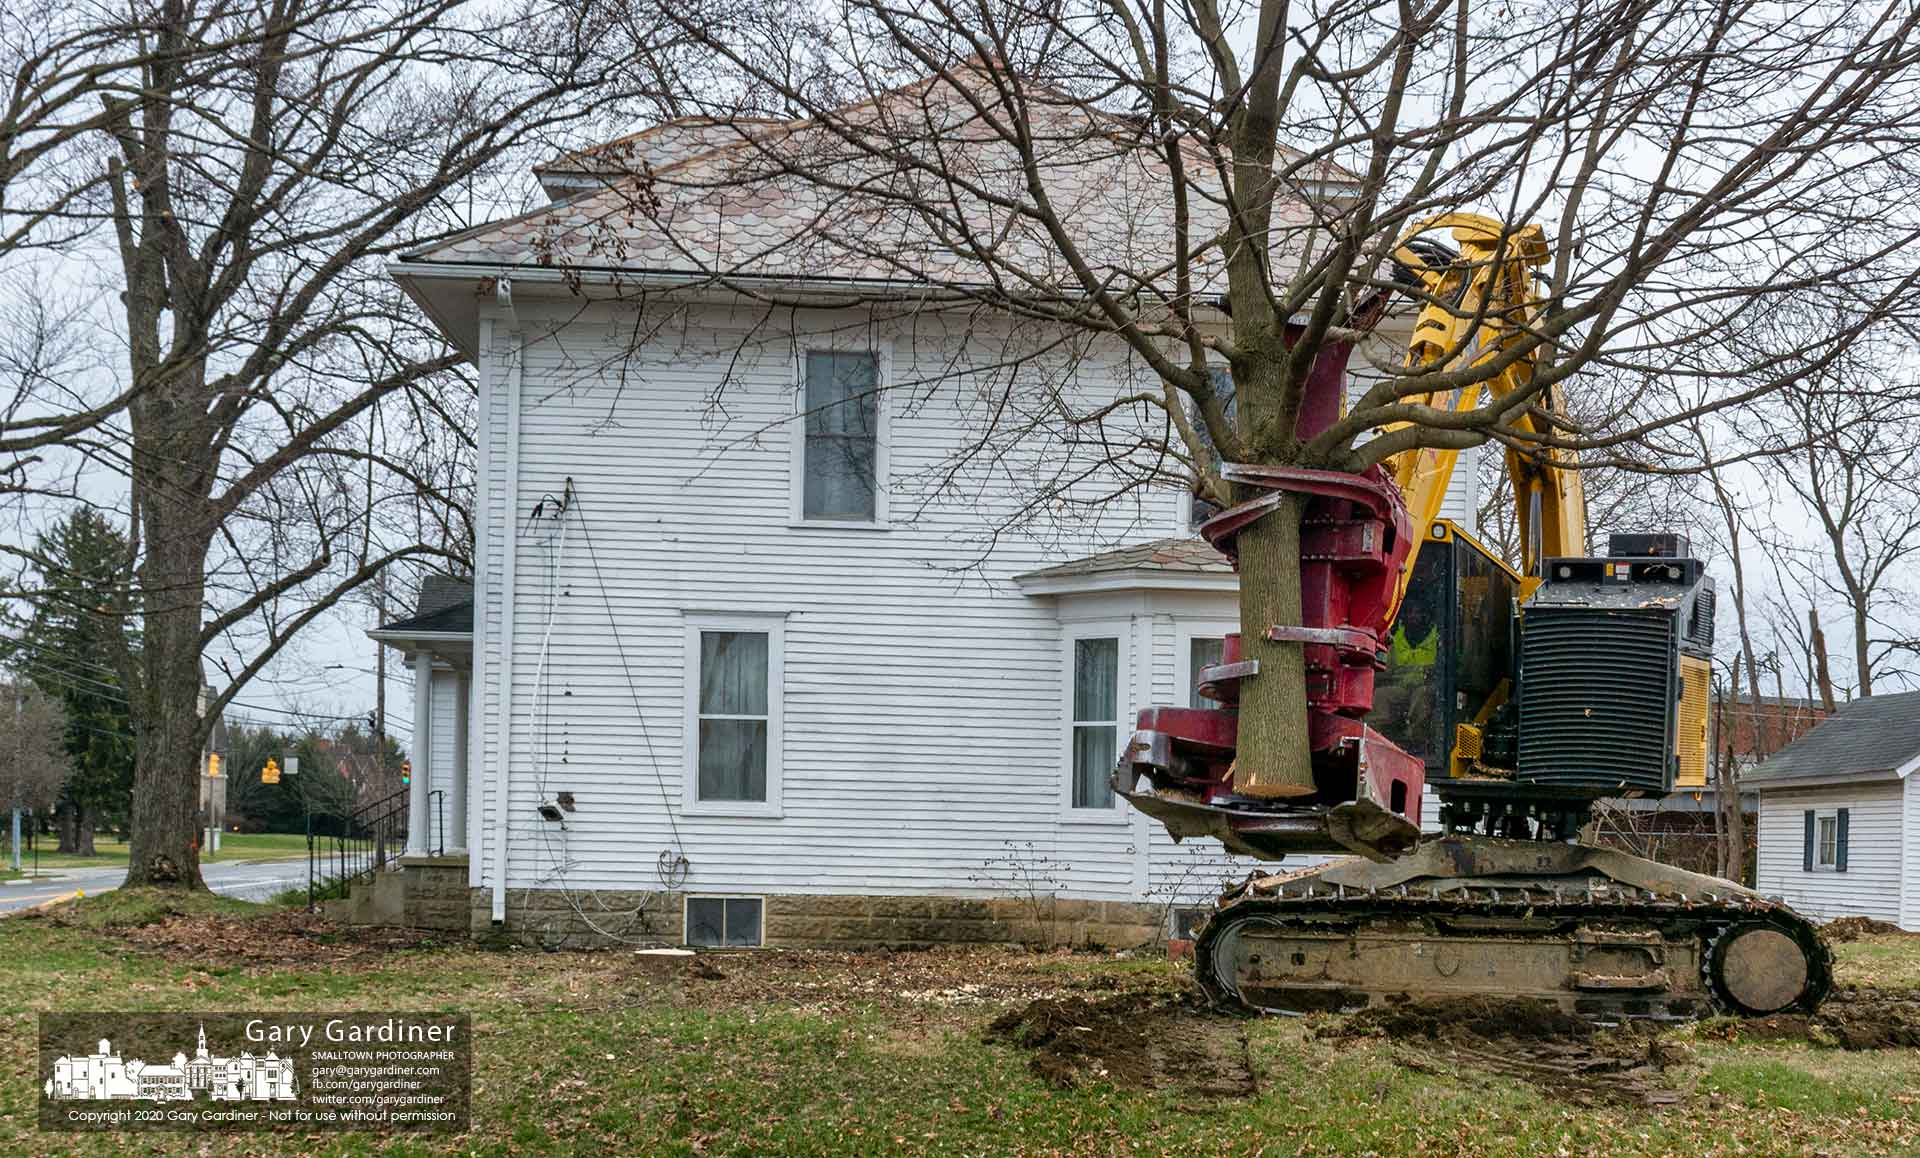 A feller carries away a tree removed from the side yard of a house on South State Street where the trees and houses are being removed to make way for an office building and apartments. My Final Photo for March 18, 2020.